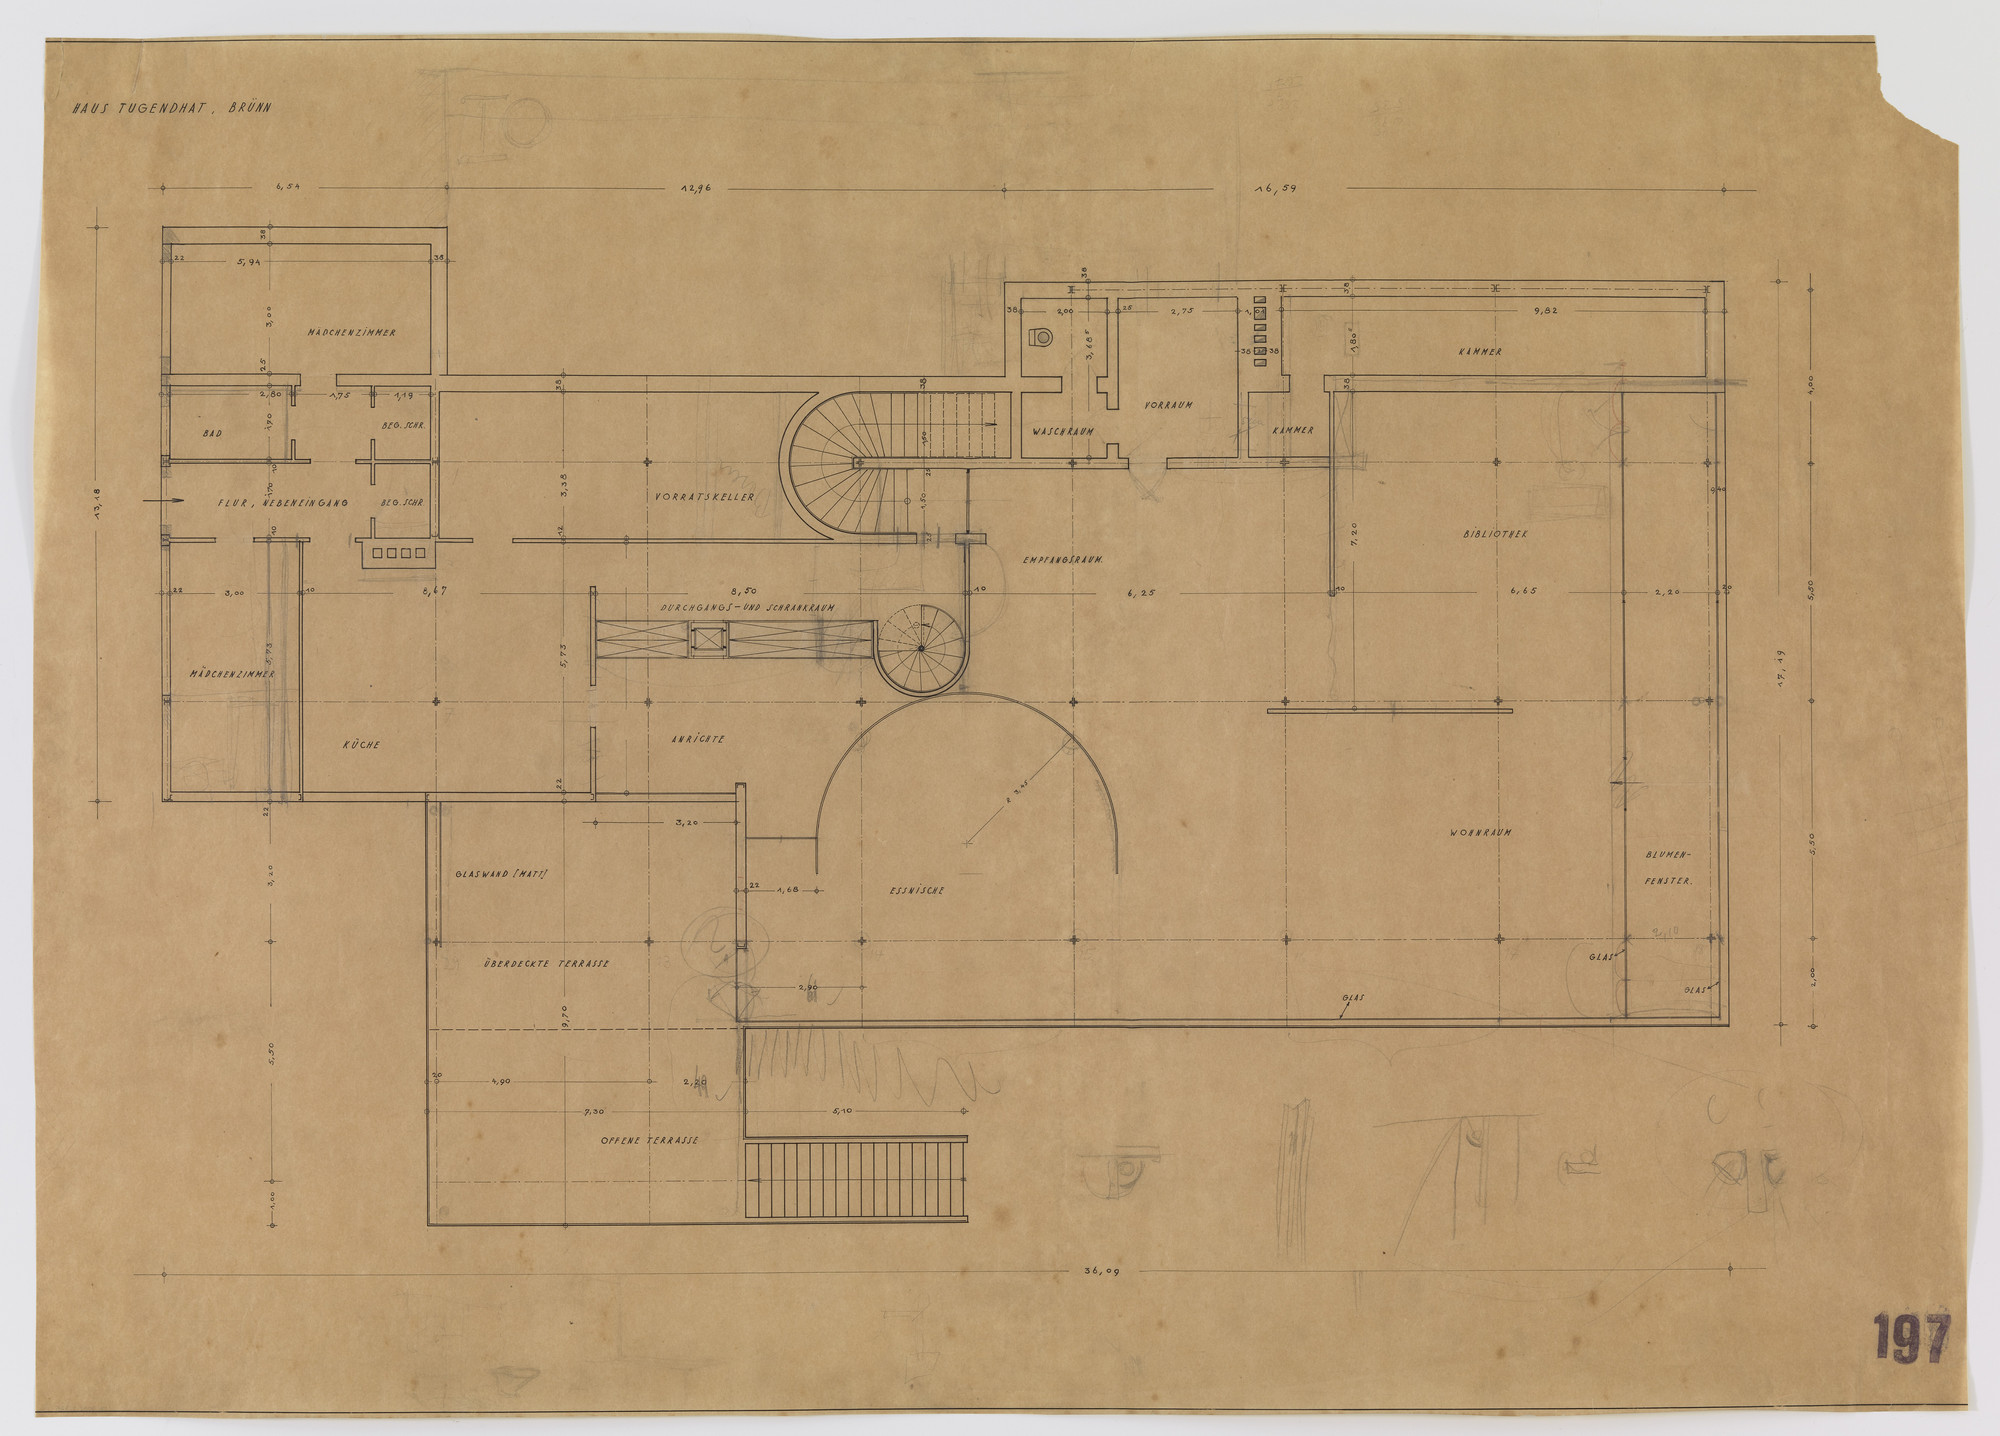 Ludwig Mies van der Rohe. Tugendhat House, Brno, Czech Republic (Ground floor plan). 1928-1930